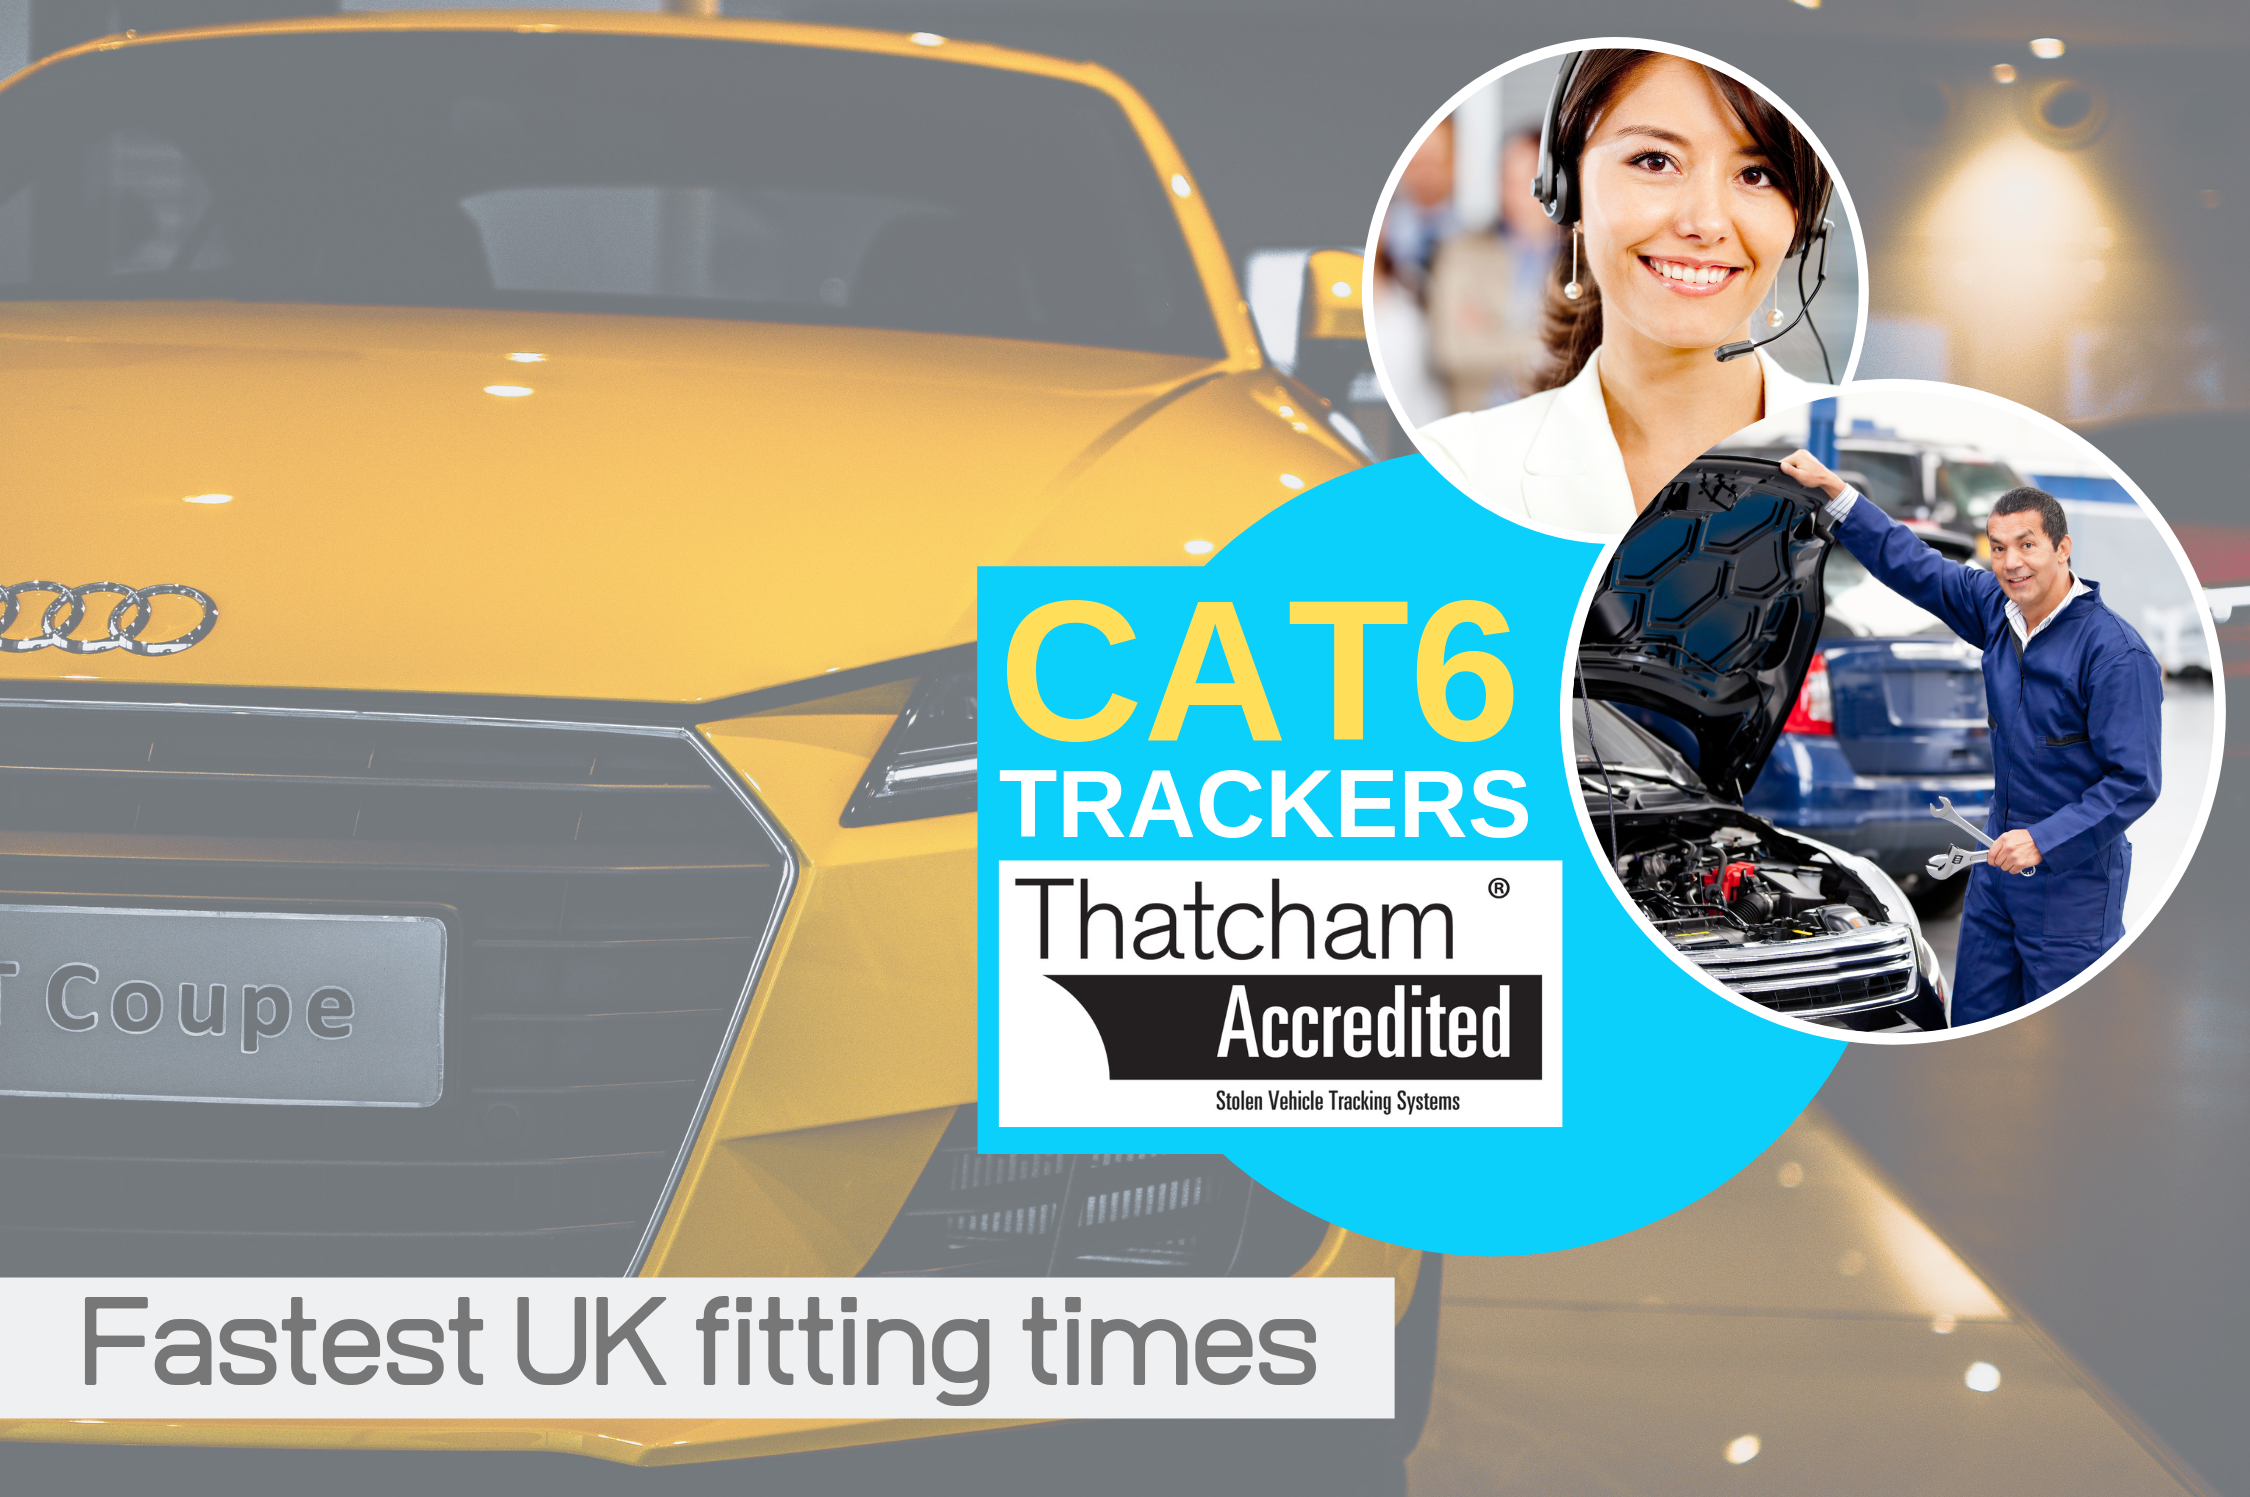 CAT 6 Trackers